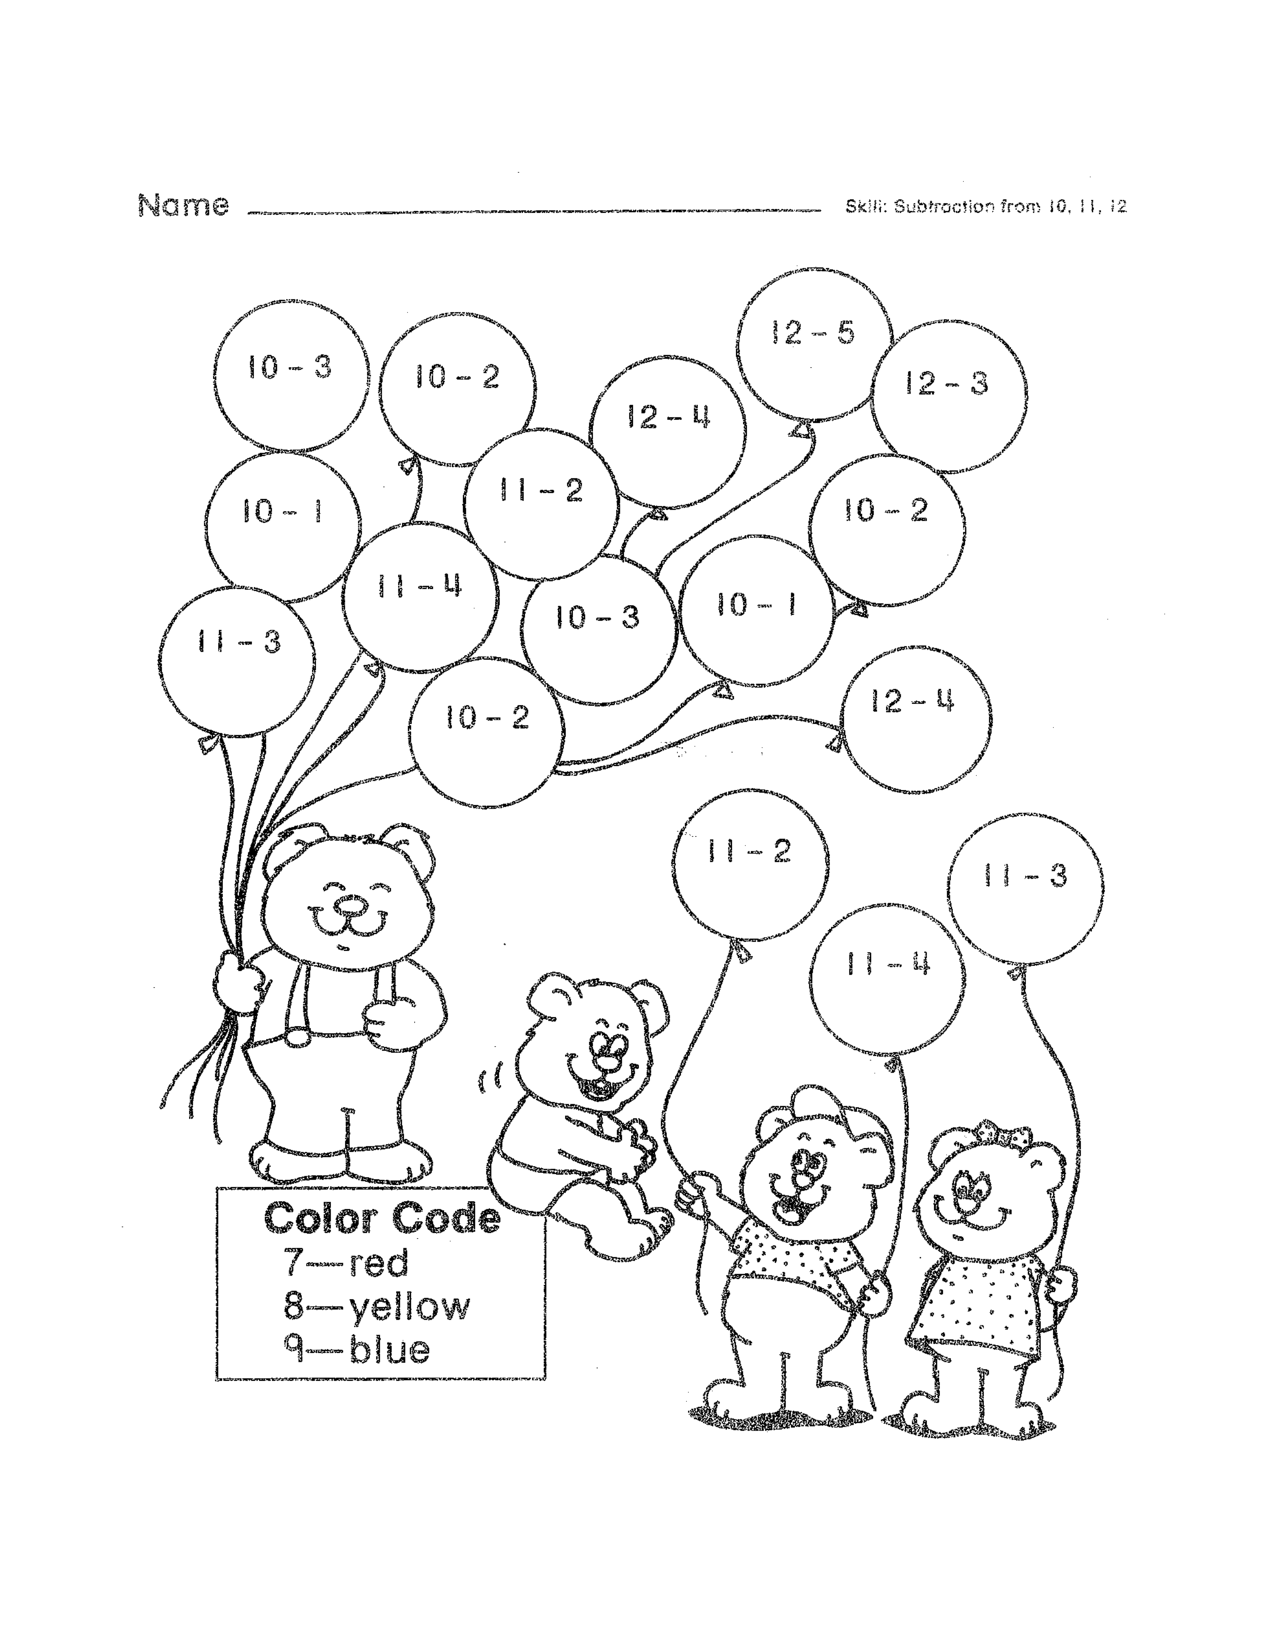 coloring worksheets for grade 2 welcome to second grade coloring pages at getcoloringscom grade coloring worksheets 2 for